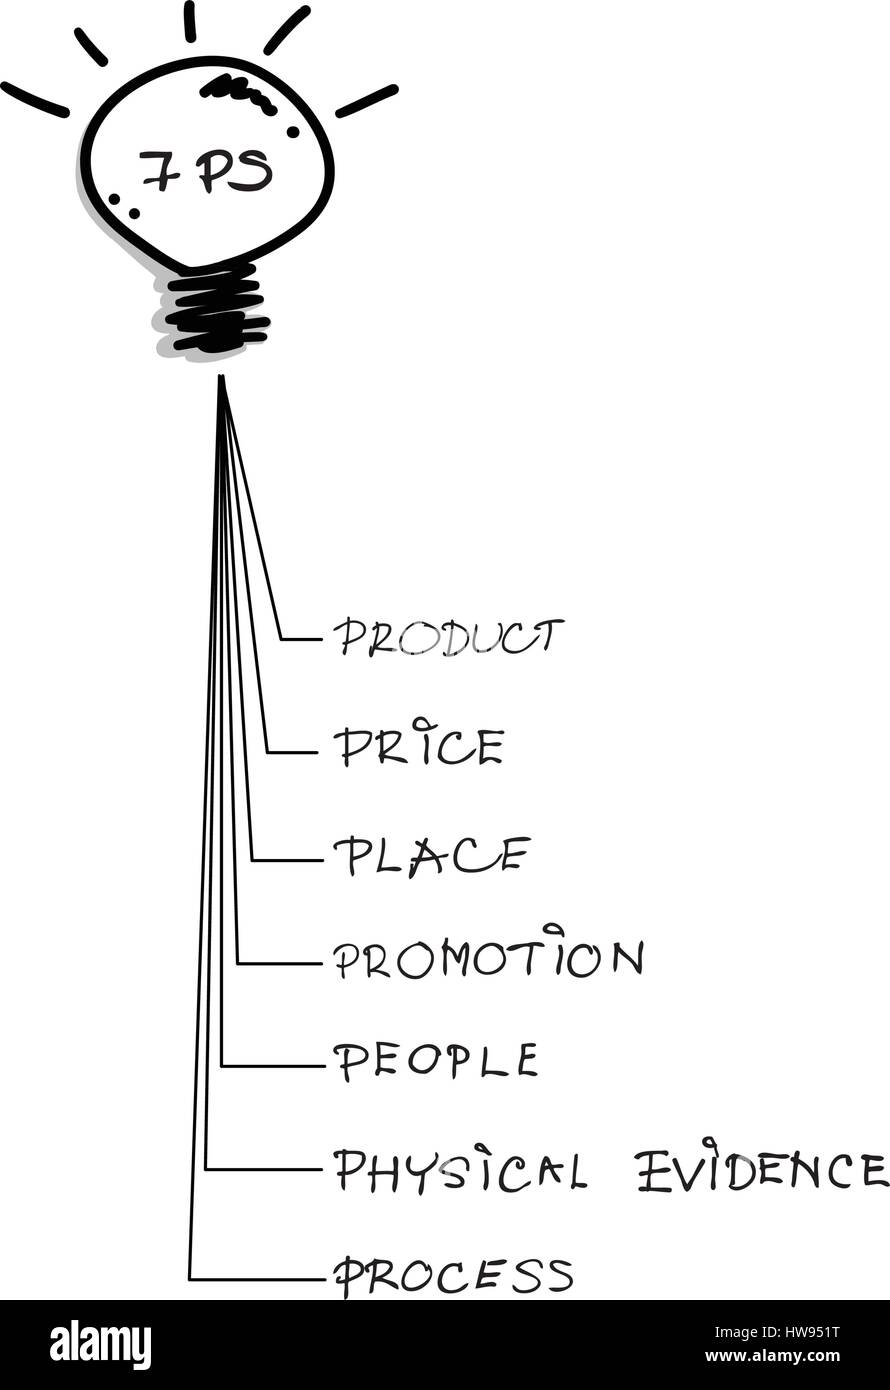 Business Concepts, Illustration of 7Ps Model or Marketing Mix ...